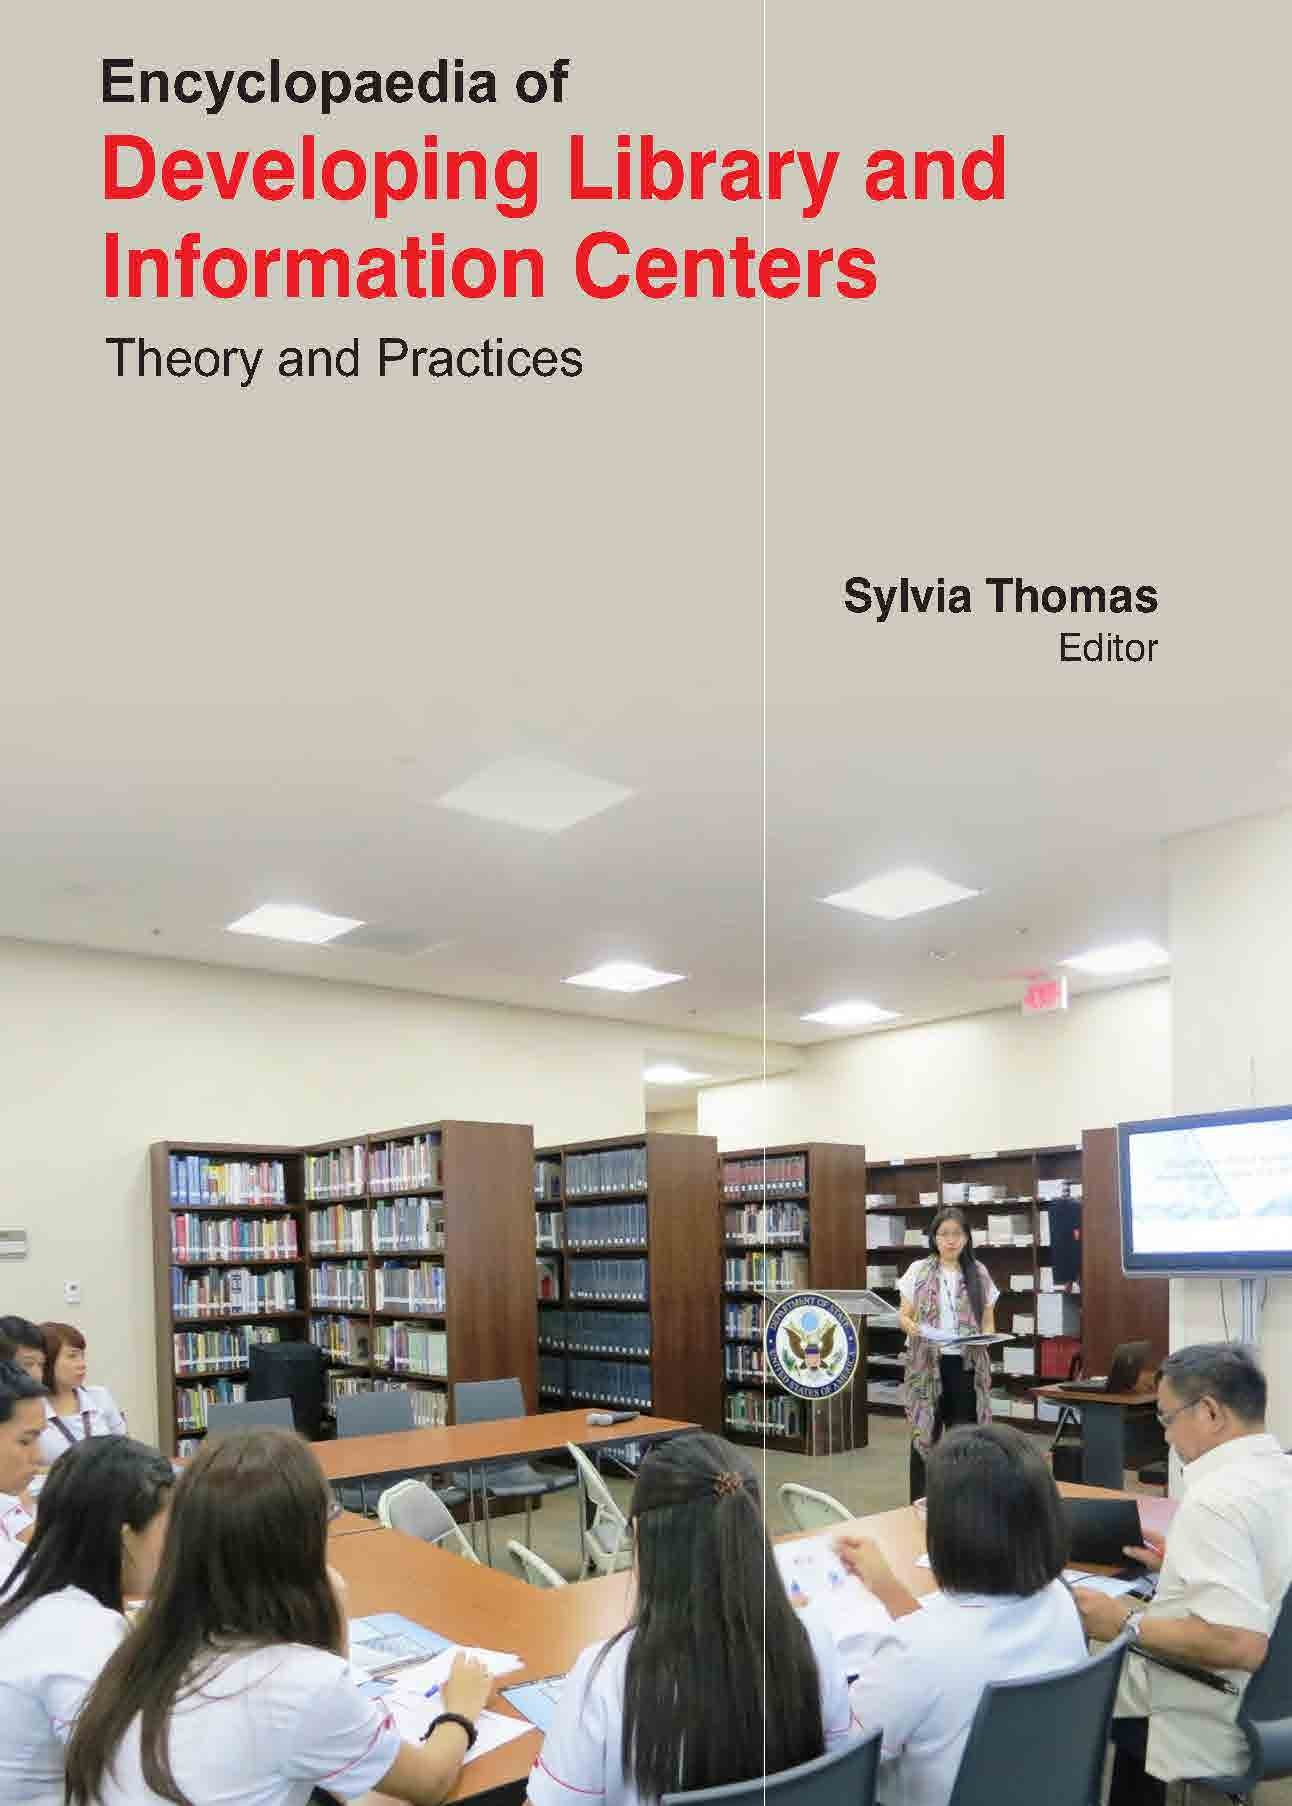 Download Encyclopaedia Of Developing Library And Information Centers: Theory And Practices (3 Volumes) ebook